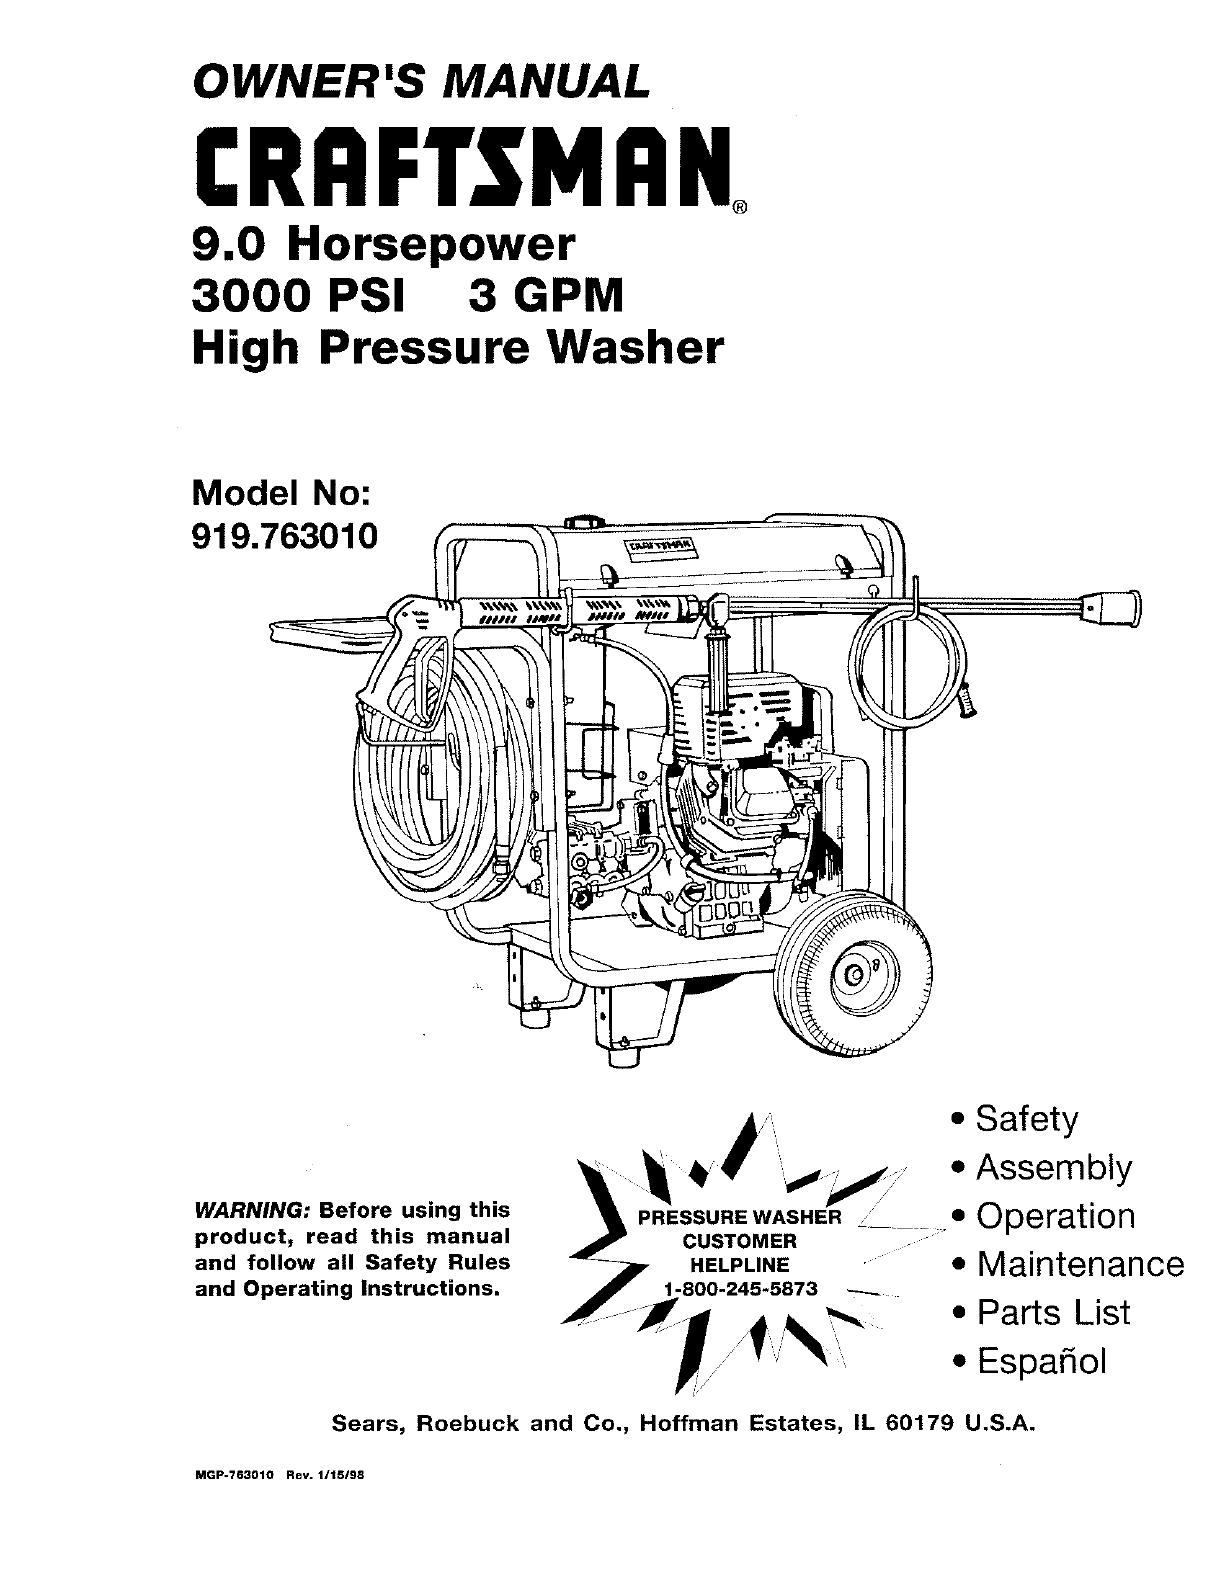 Craftsman Pressure Washer 919.763010 User Guide